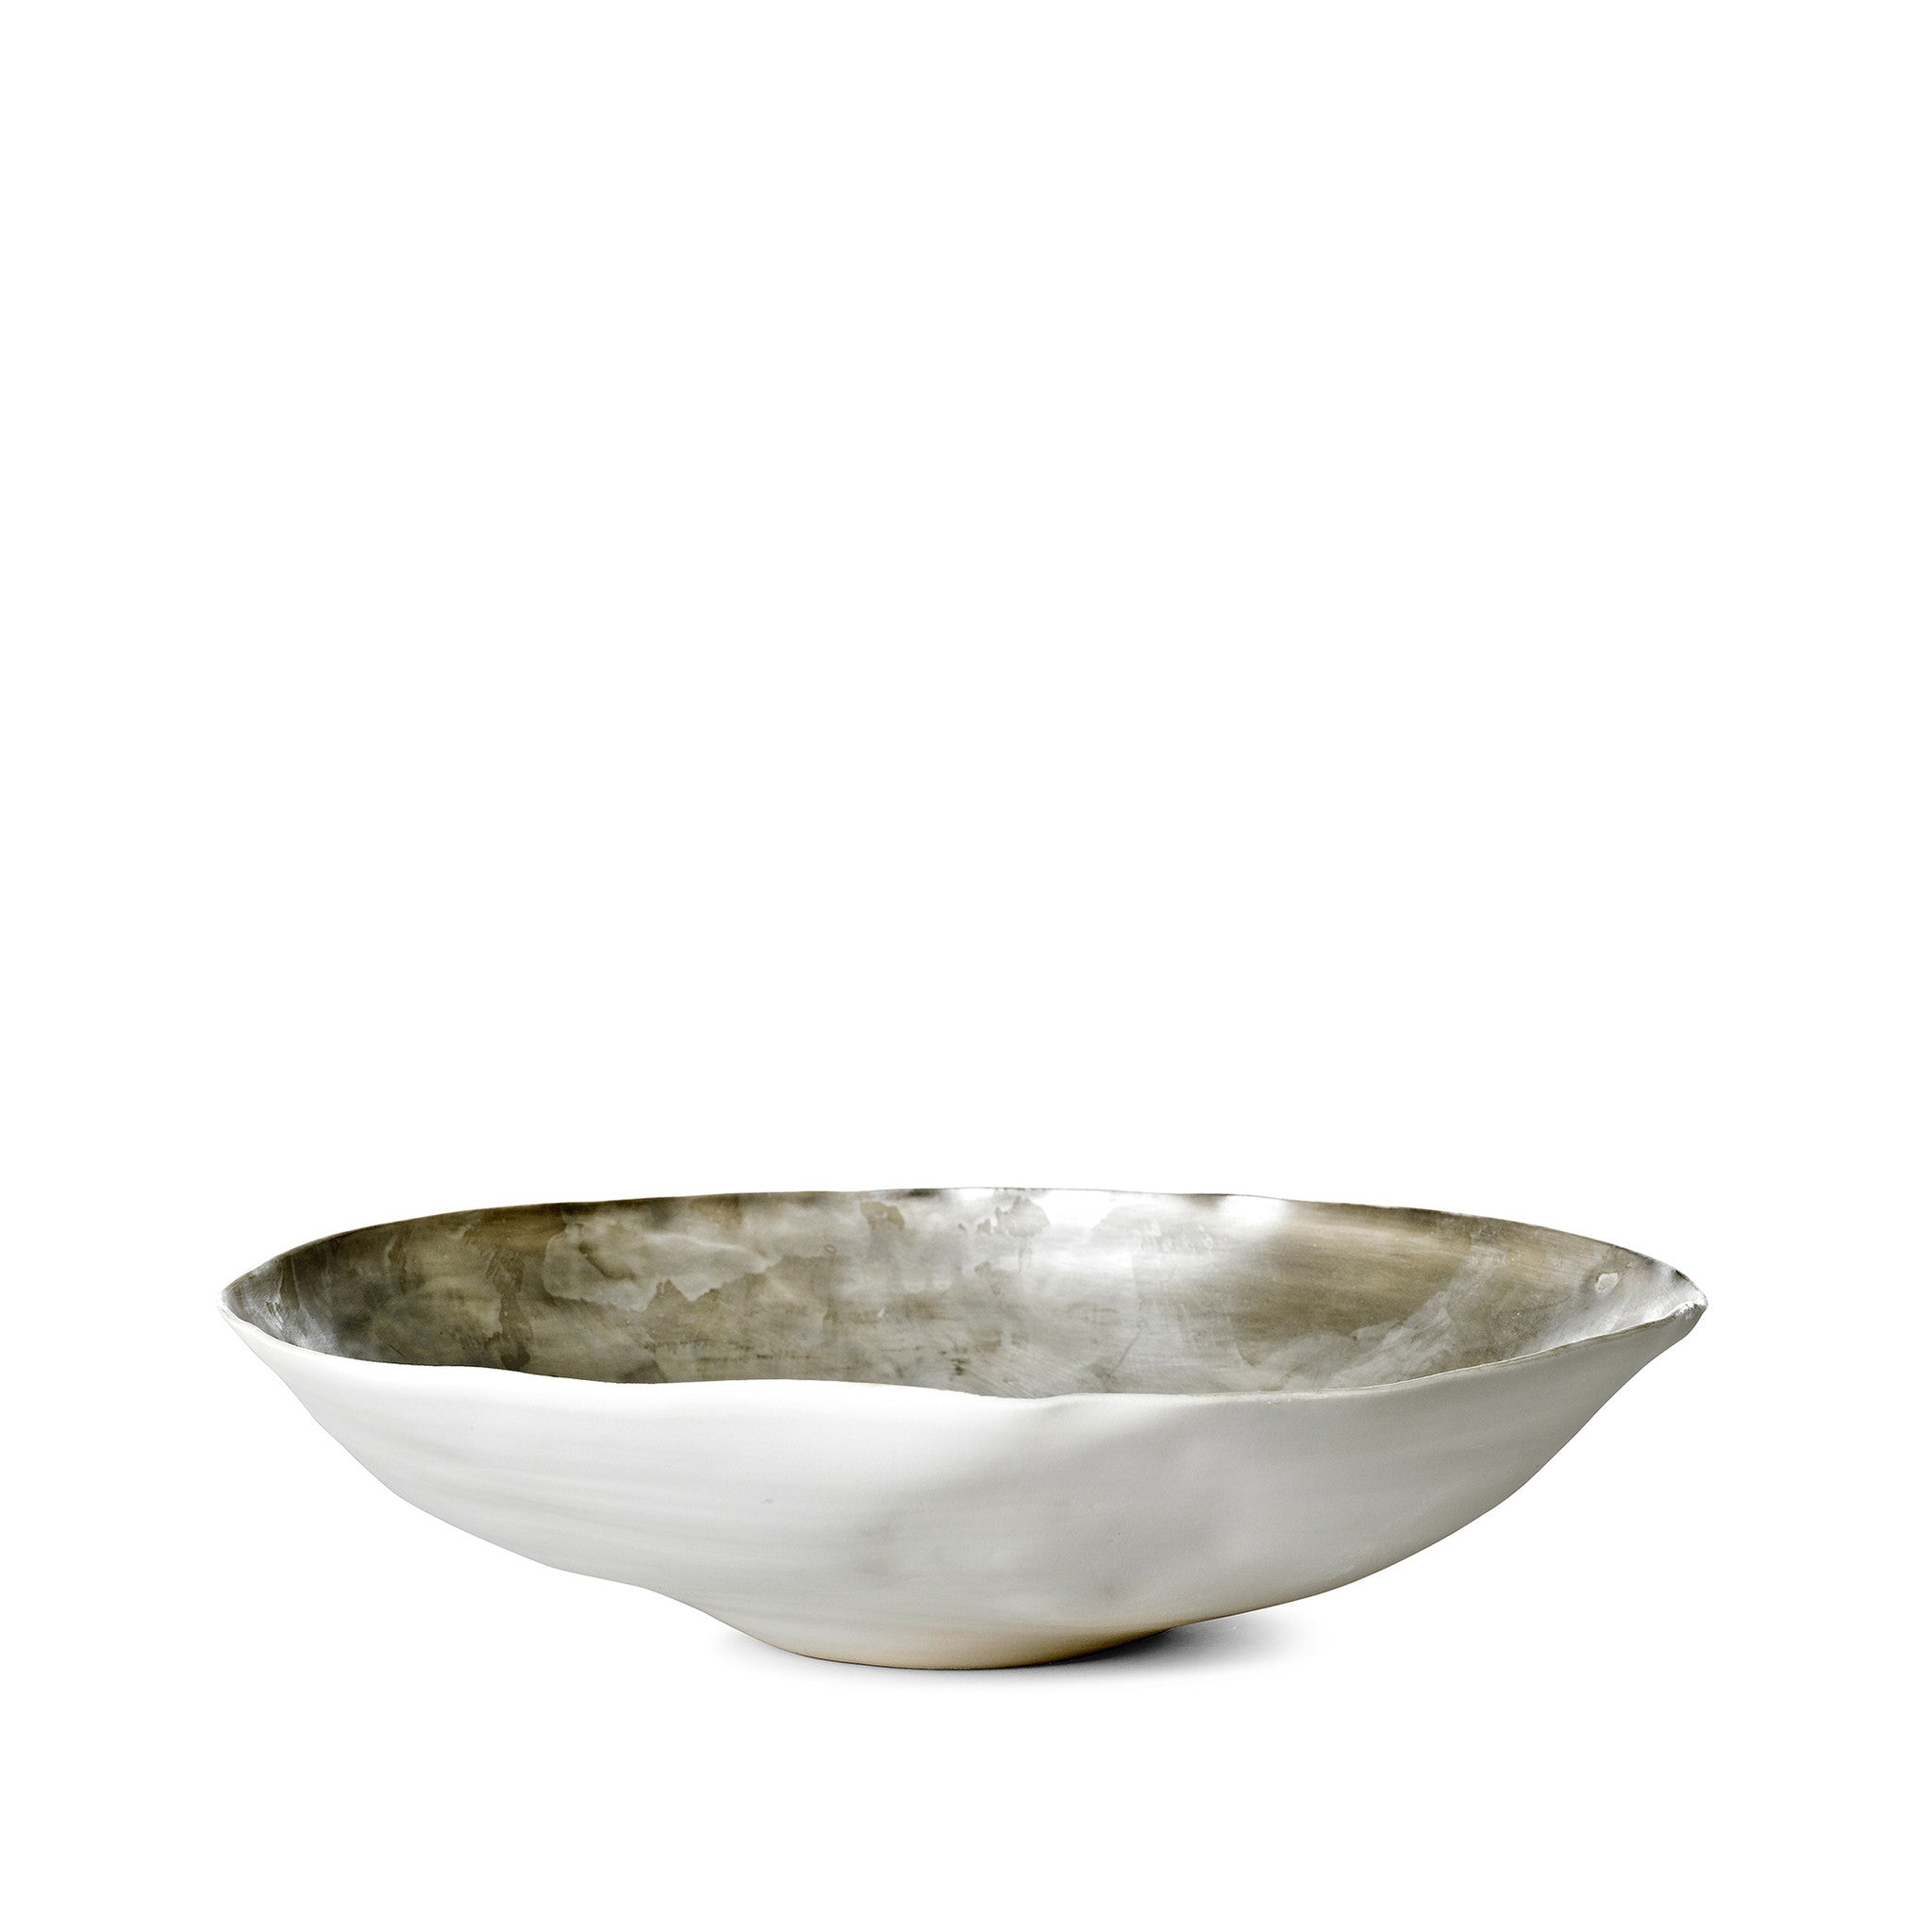 Large Ceramic Shell Bowl in Matte Silver, 30cm